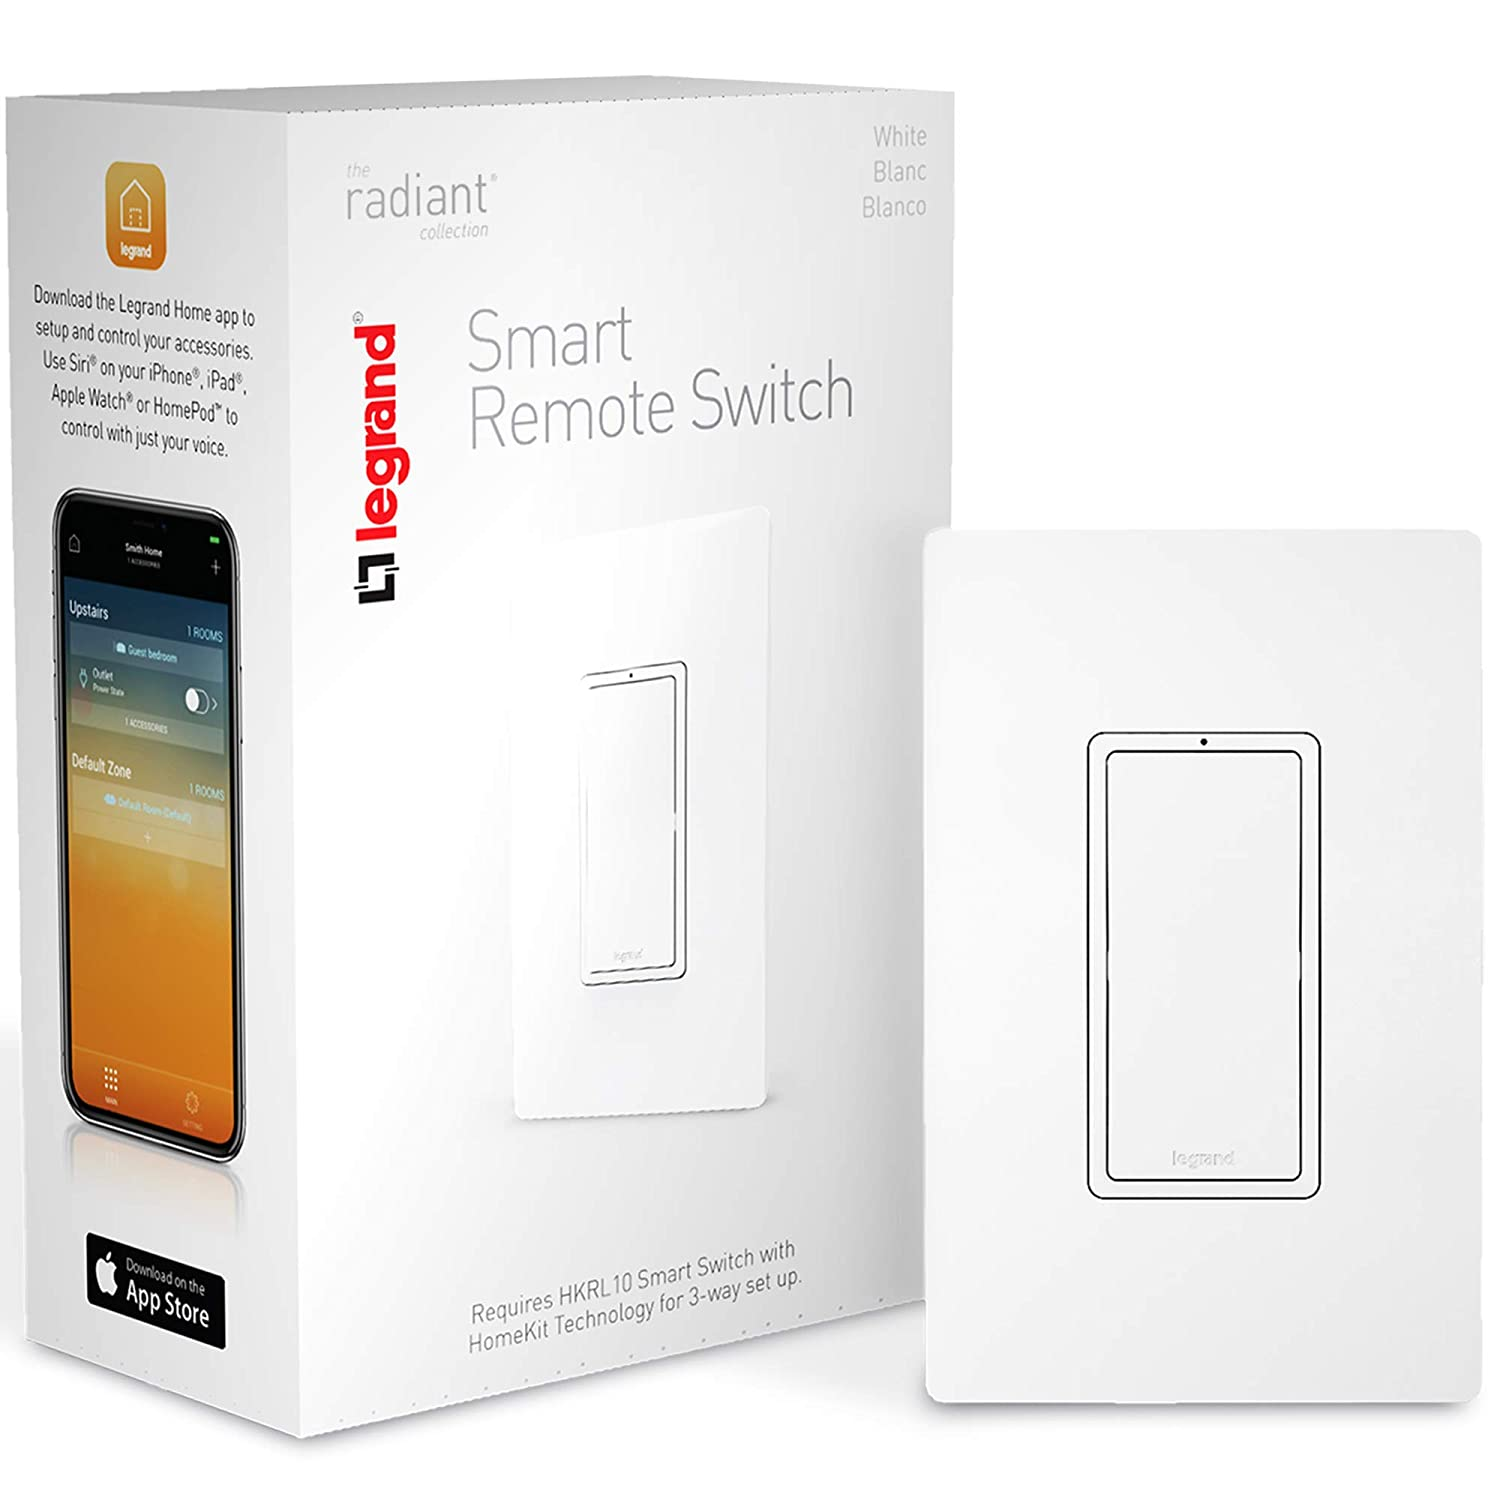 Legrand, Smart Light Switch, Apple Homekit, Remote Accessory, Quick Setup On iOS (iPhone or iPad), No Hub Required, HKRL20